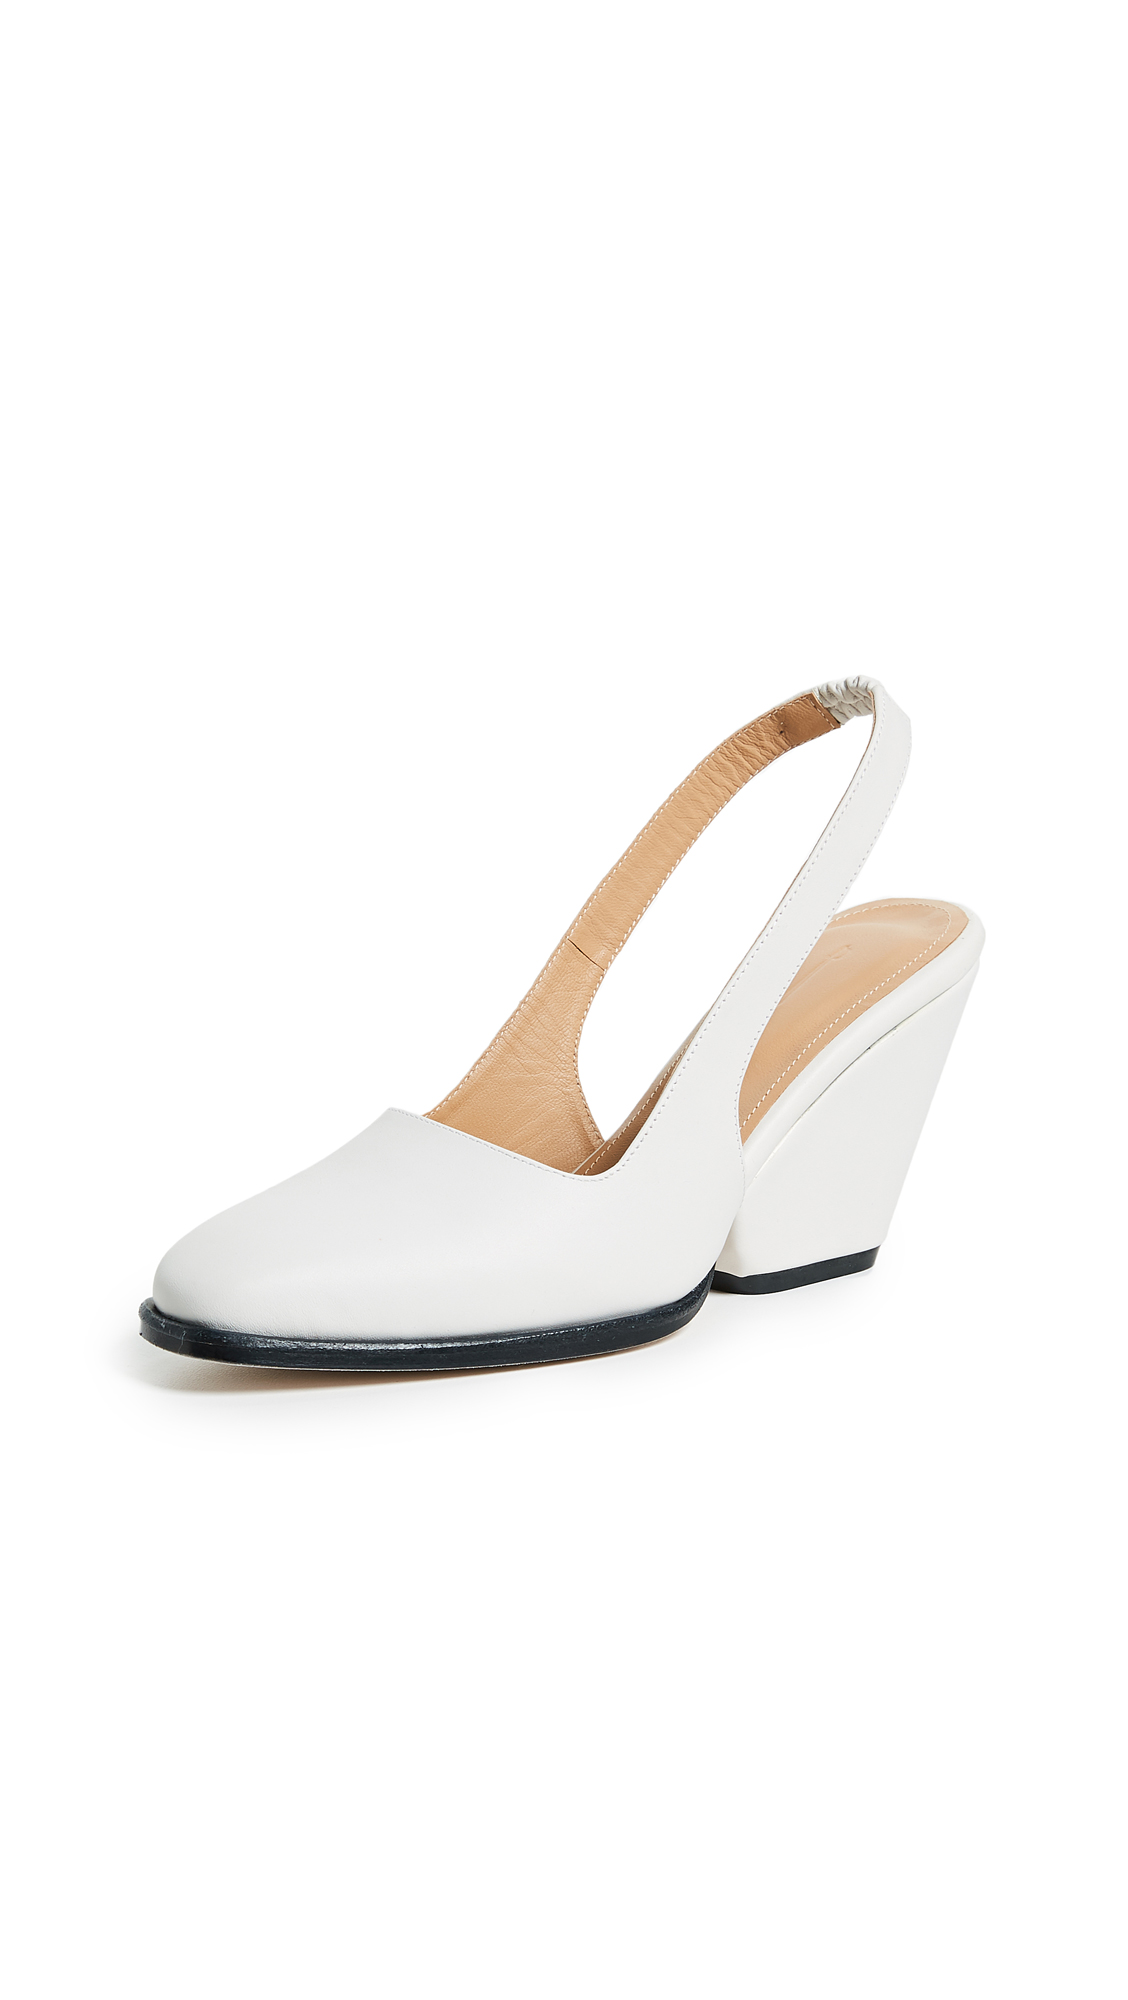 The Palatines Imago Slingback Pumps - White